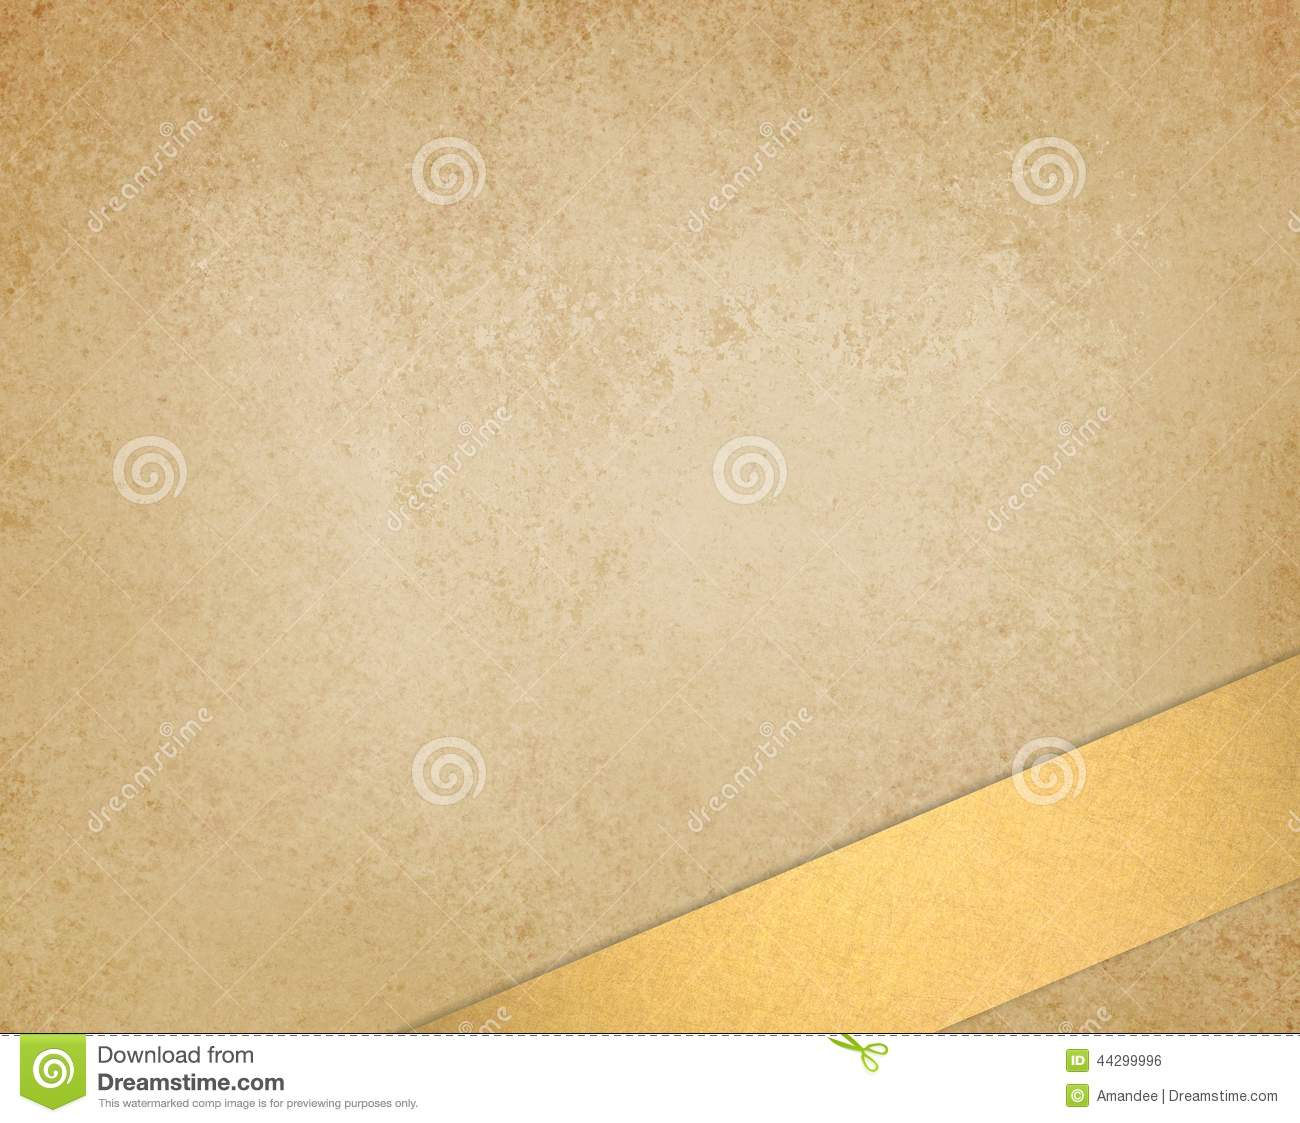 light gold vintage background - photo #3